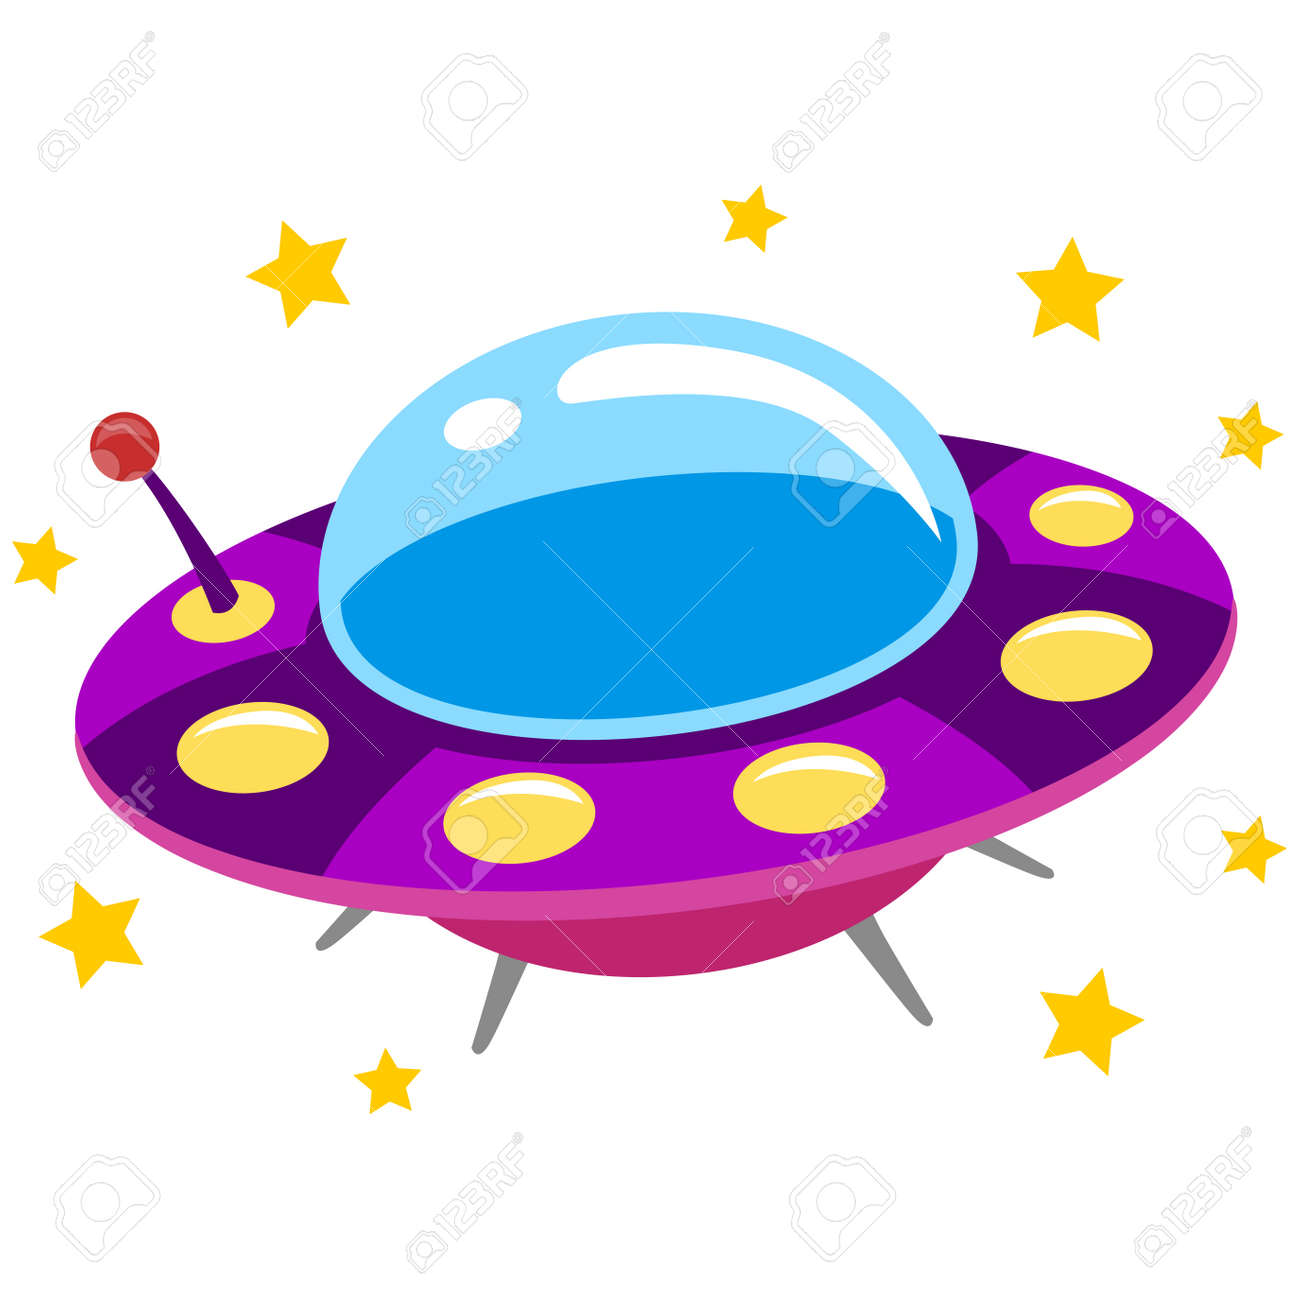 vector illustration of spaceship ufo and flying saucer royalty free rh 123rf com Fly Clip Art free flying saucer clipart